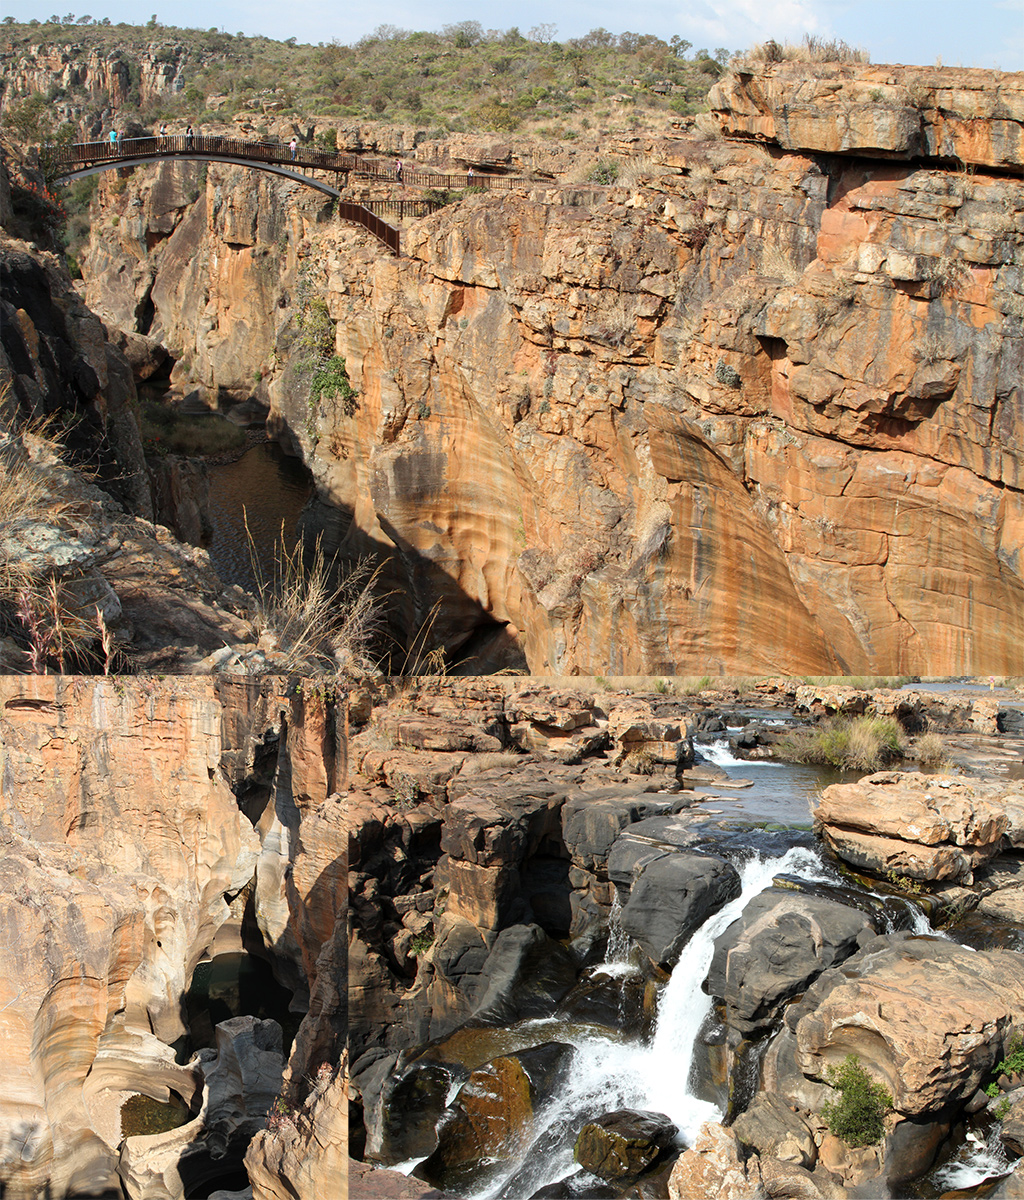 bourke's luck potholes - Panoramaroute